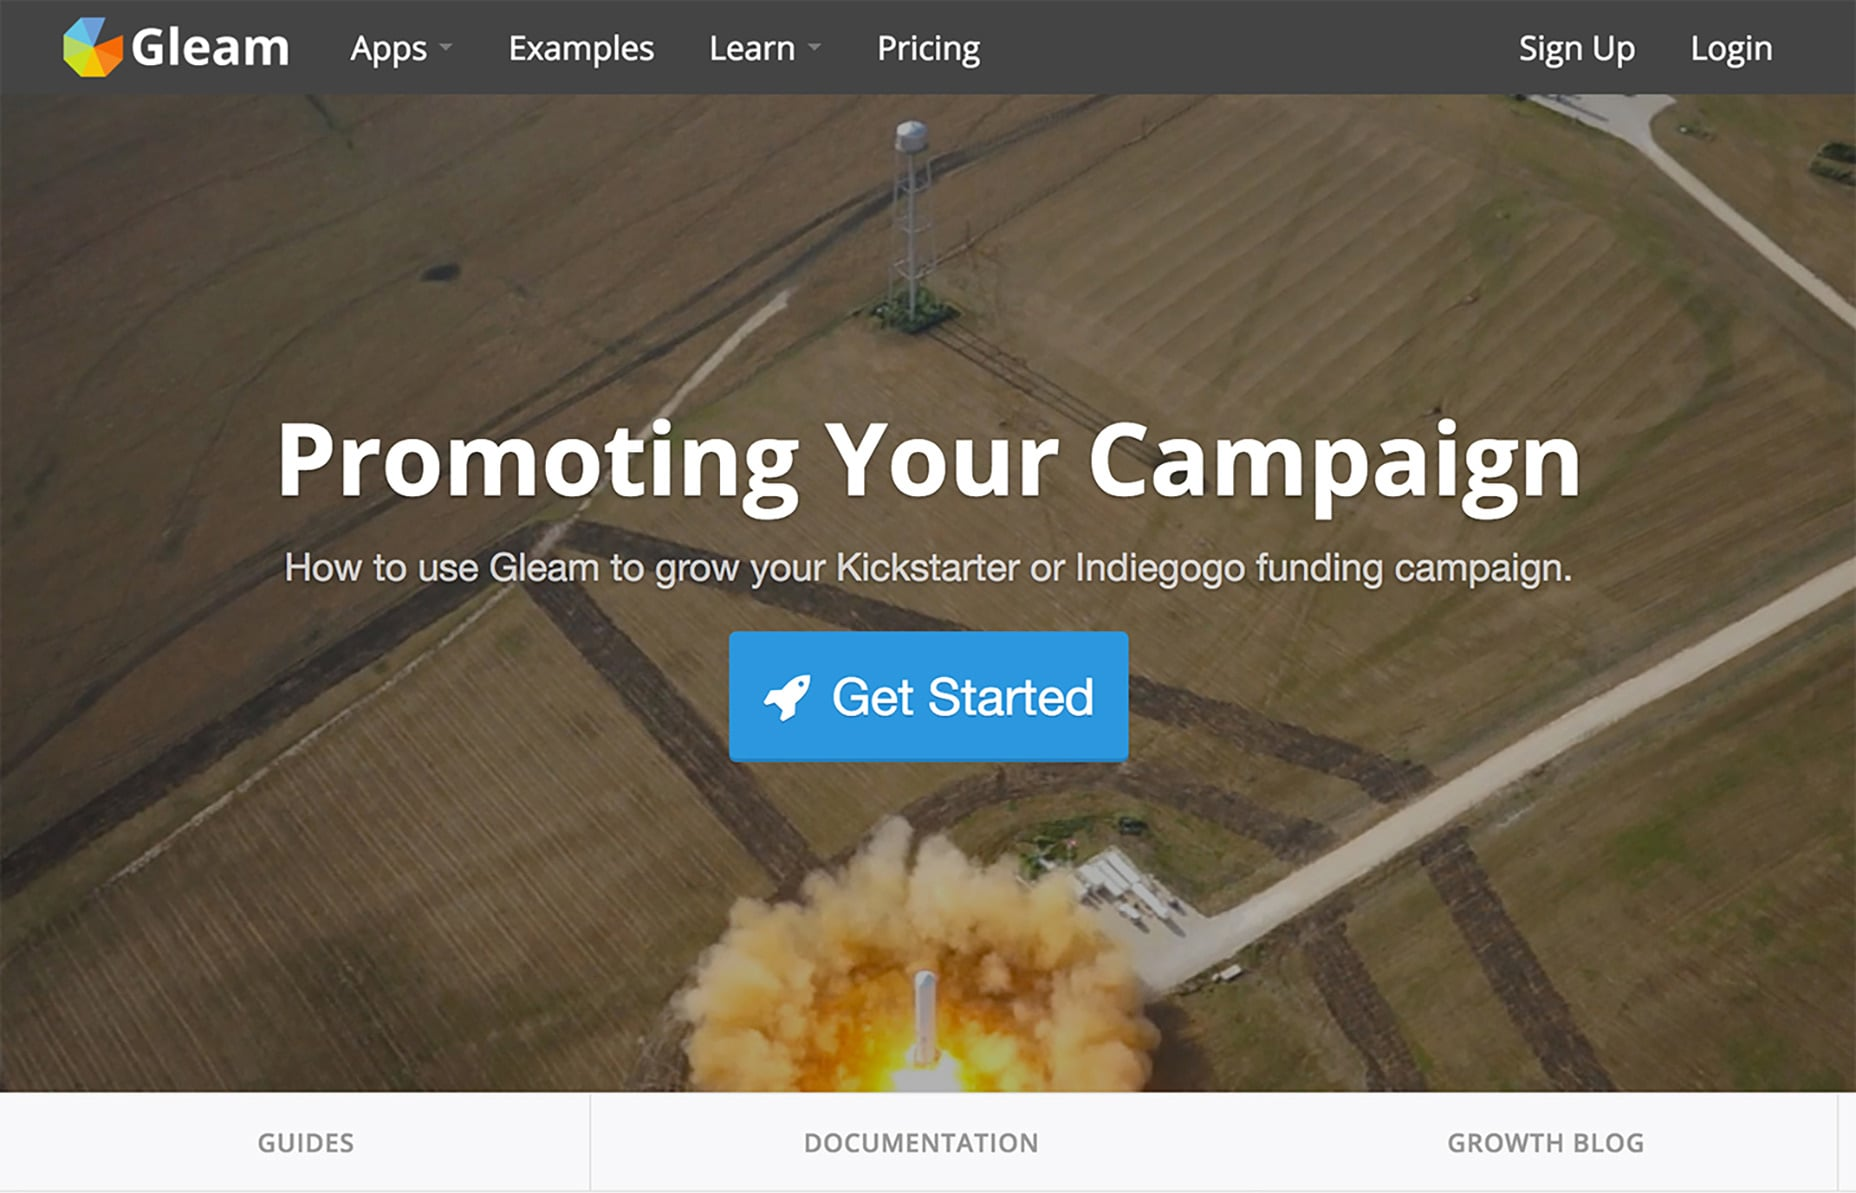 Use Stock Images on Landing Page